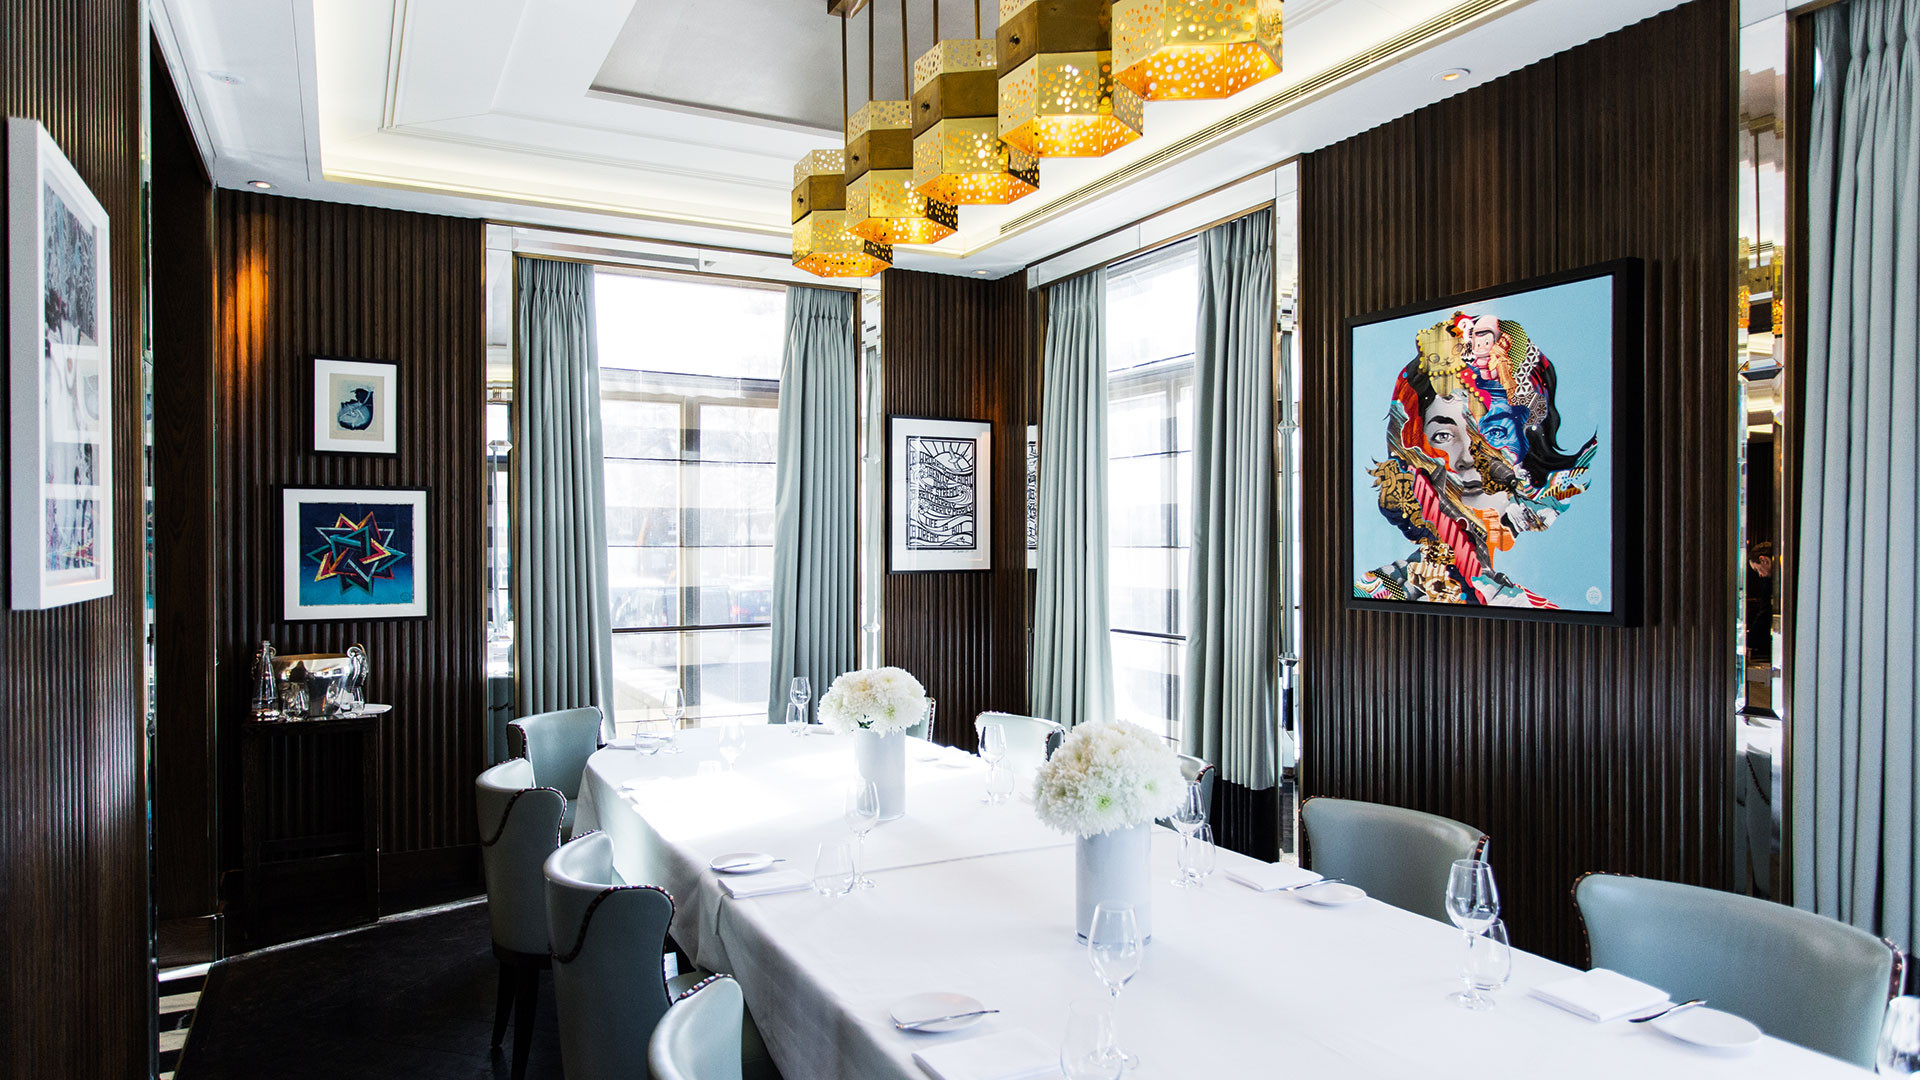 Interiors with flair at Marcus Wareing at The Berkeley